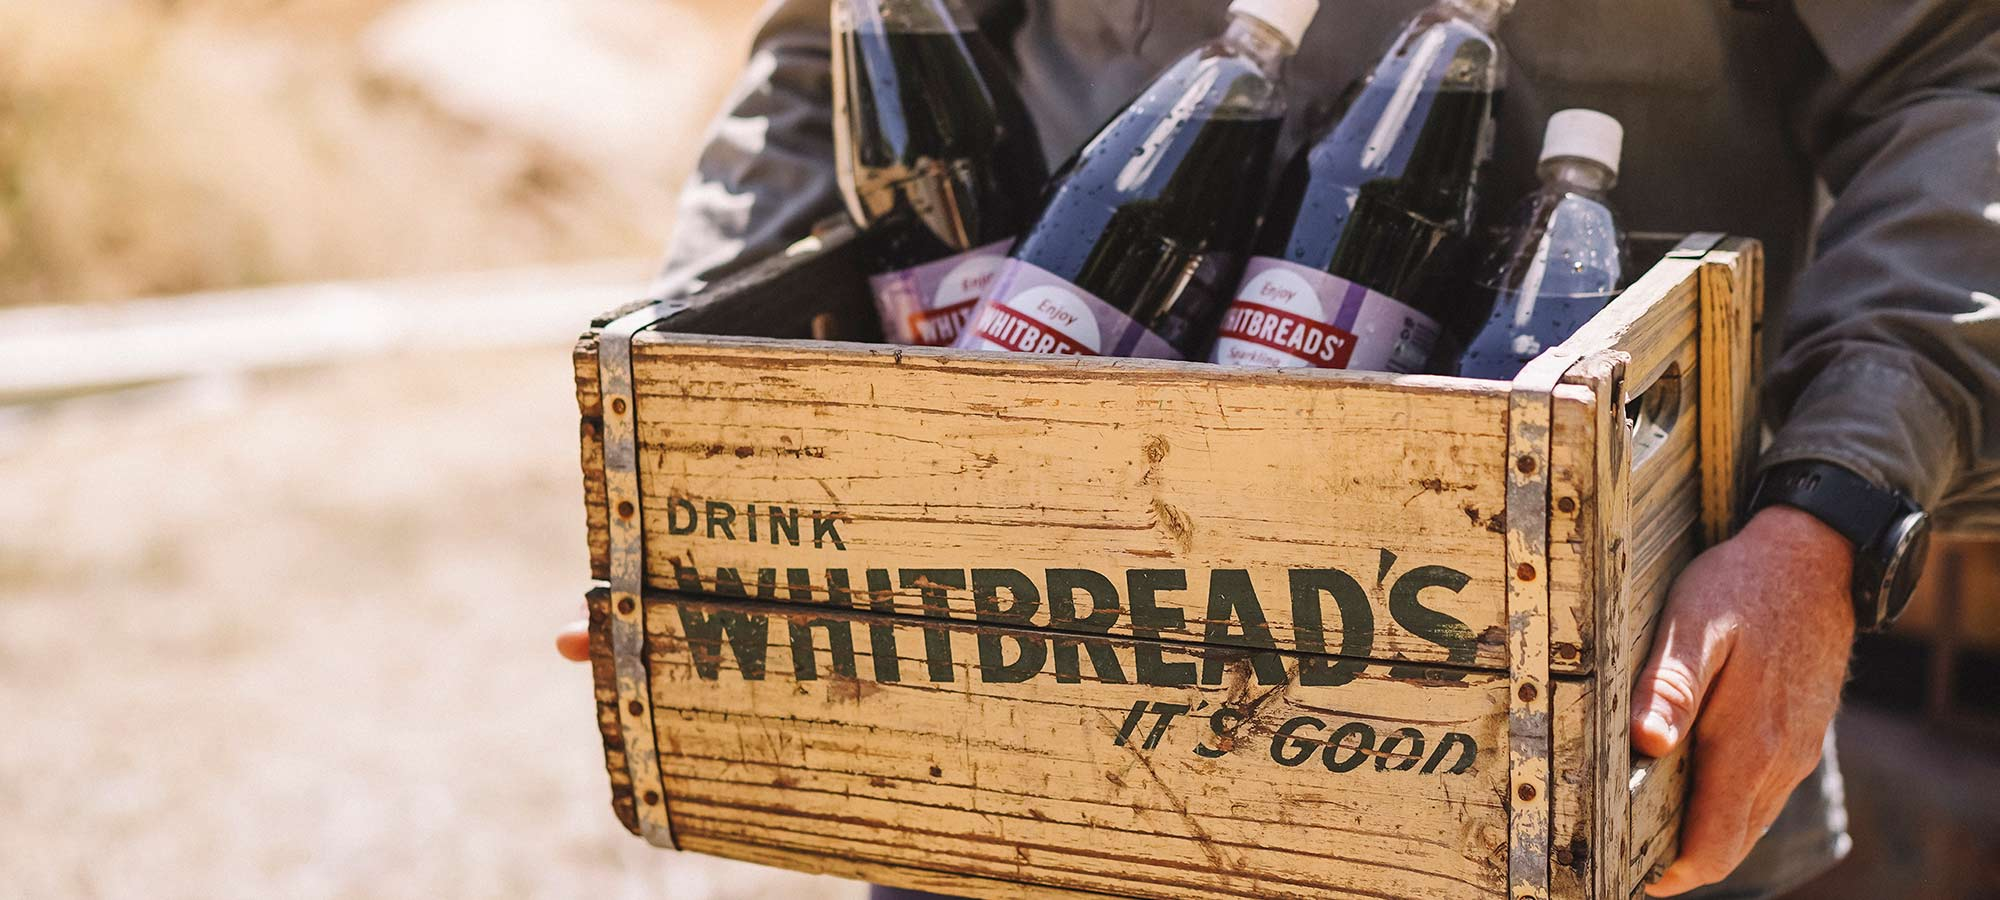 Whitbreads History Vintage Crate